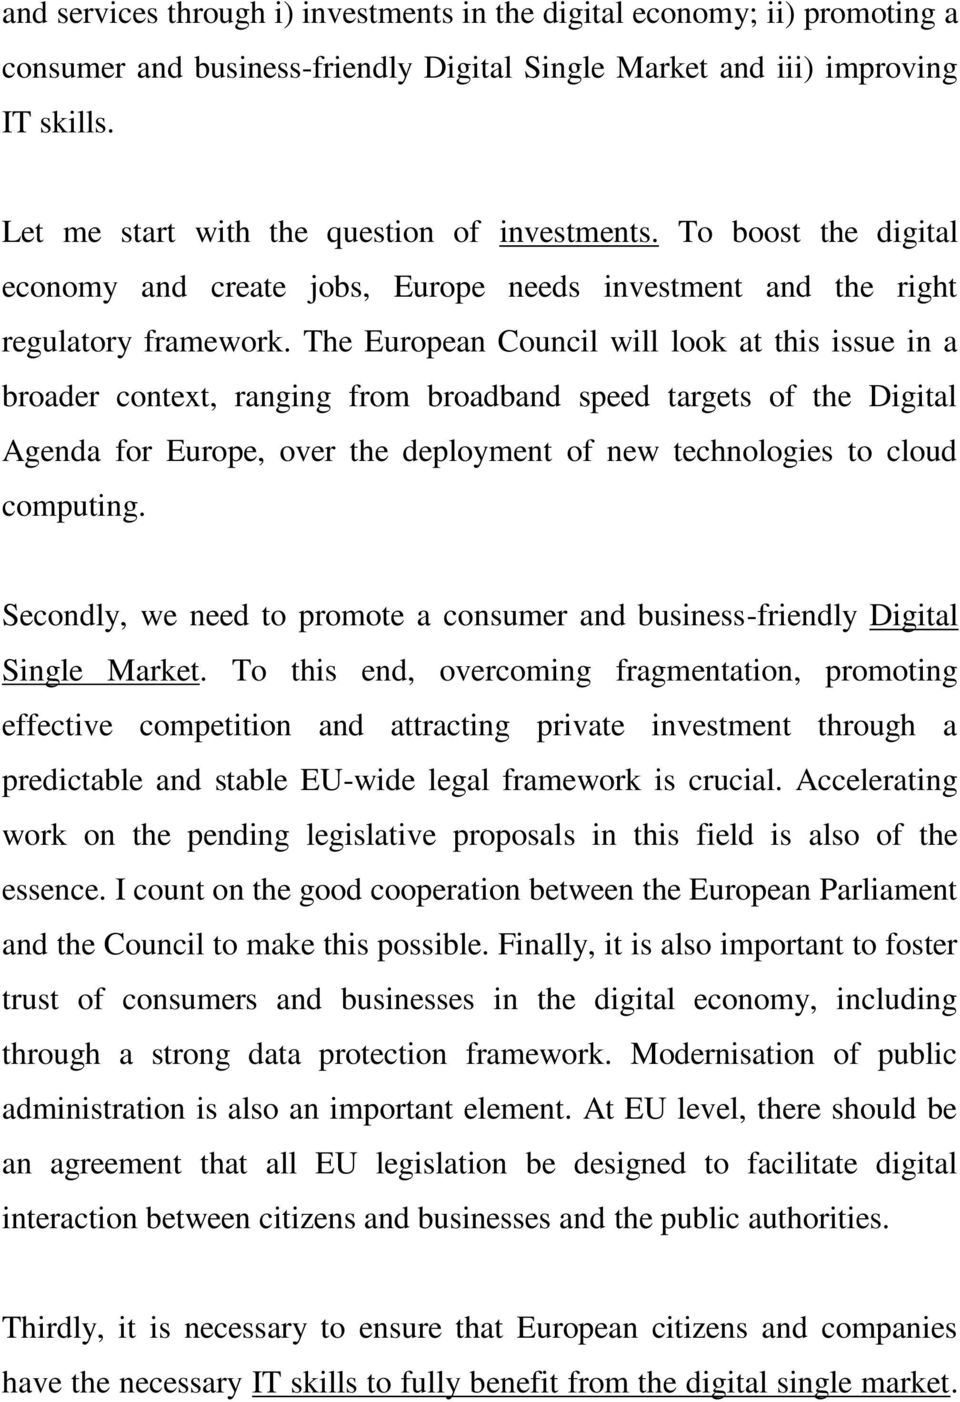 The European Council will look at this issue in a broader context, ranging from broadband speed targets of the Digital Agenda for Europe, over the deployment of new technologies to cloud computing.